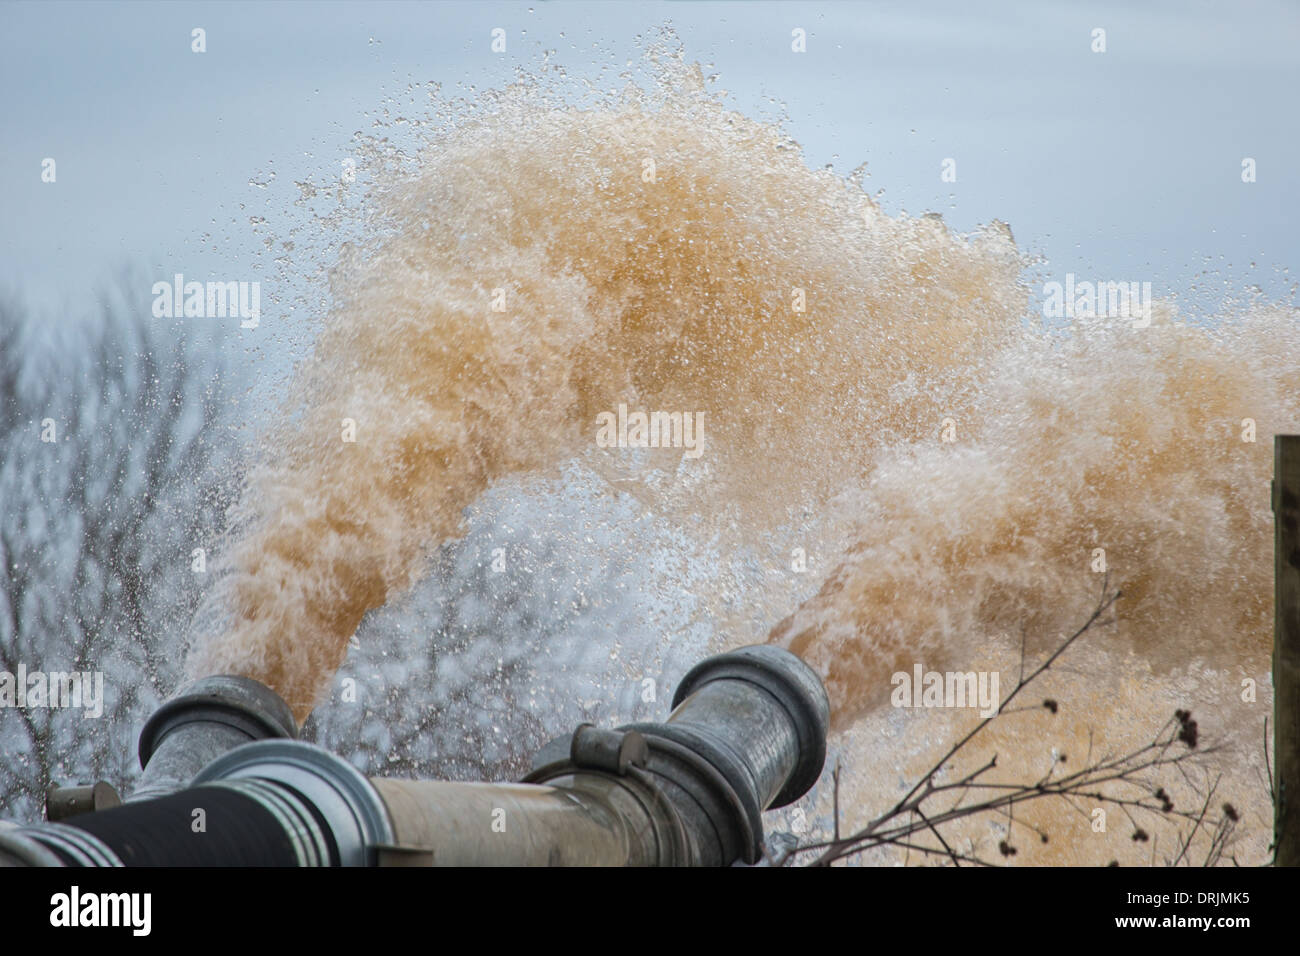 Pumping water from the flooded Somerset Levels at Burrowbridge into the River Parrett follwoing ongoing heavy rain. - Stock Image